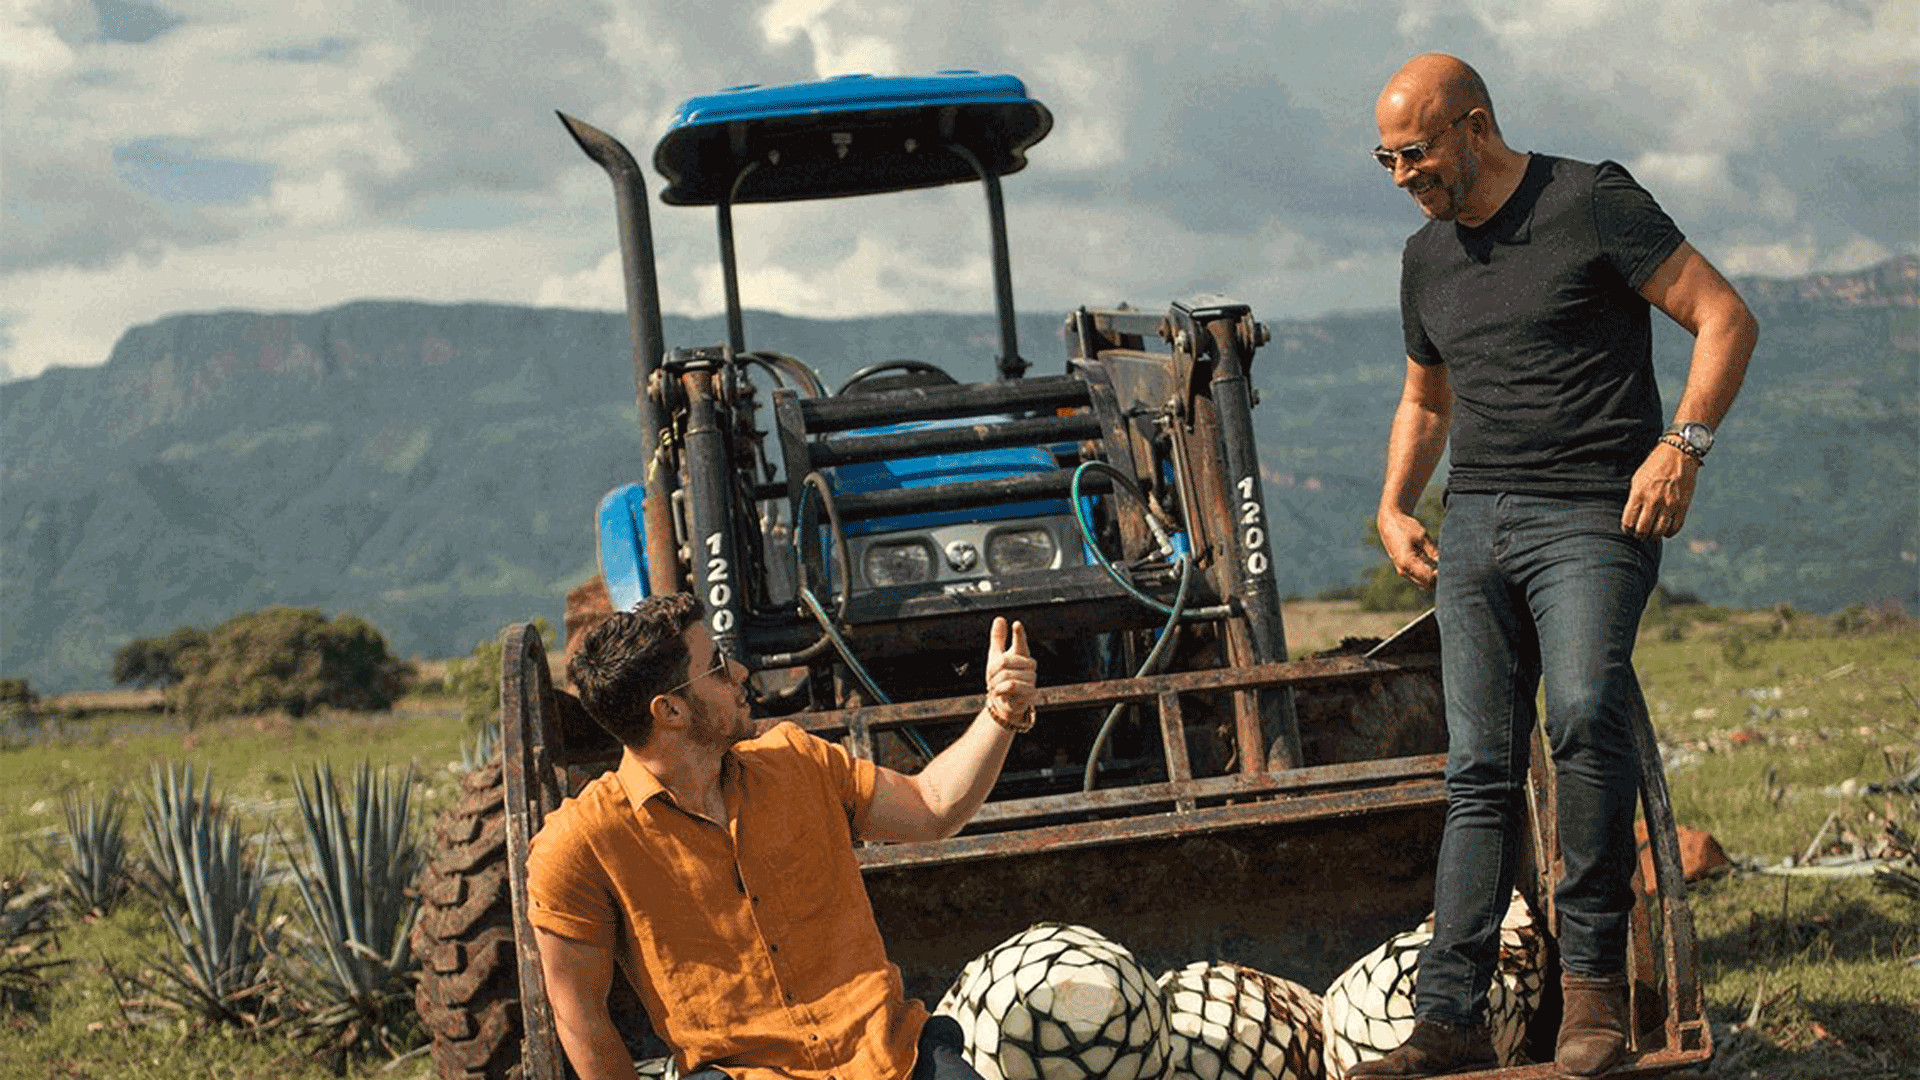 Nick Jonas and John Varvatos harvesting agave in Mexico | Villa One Tequila